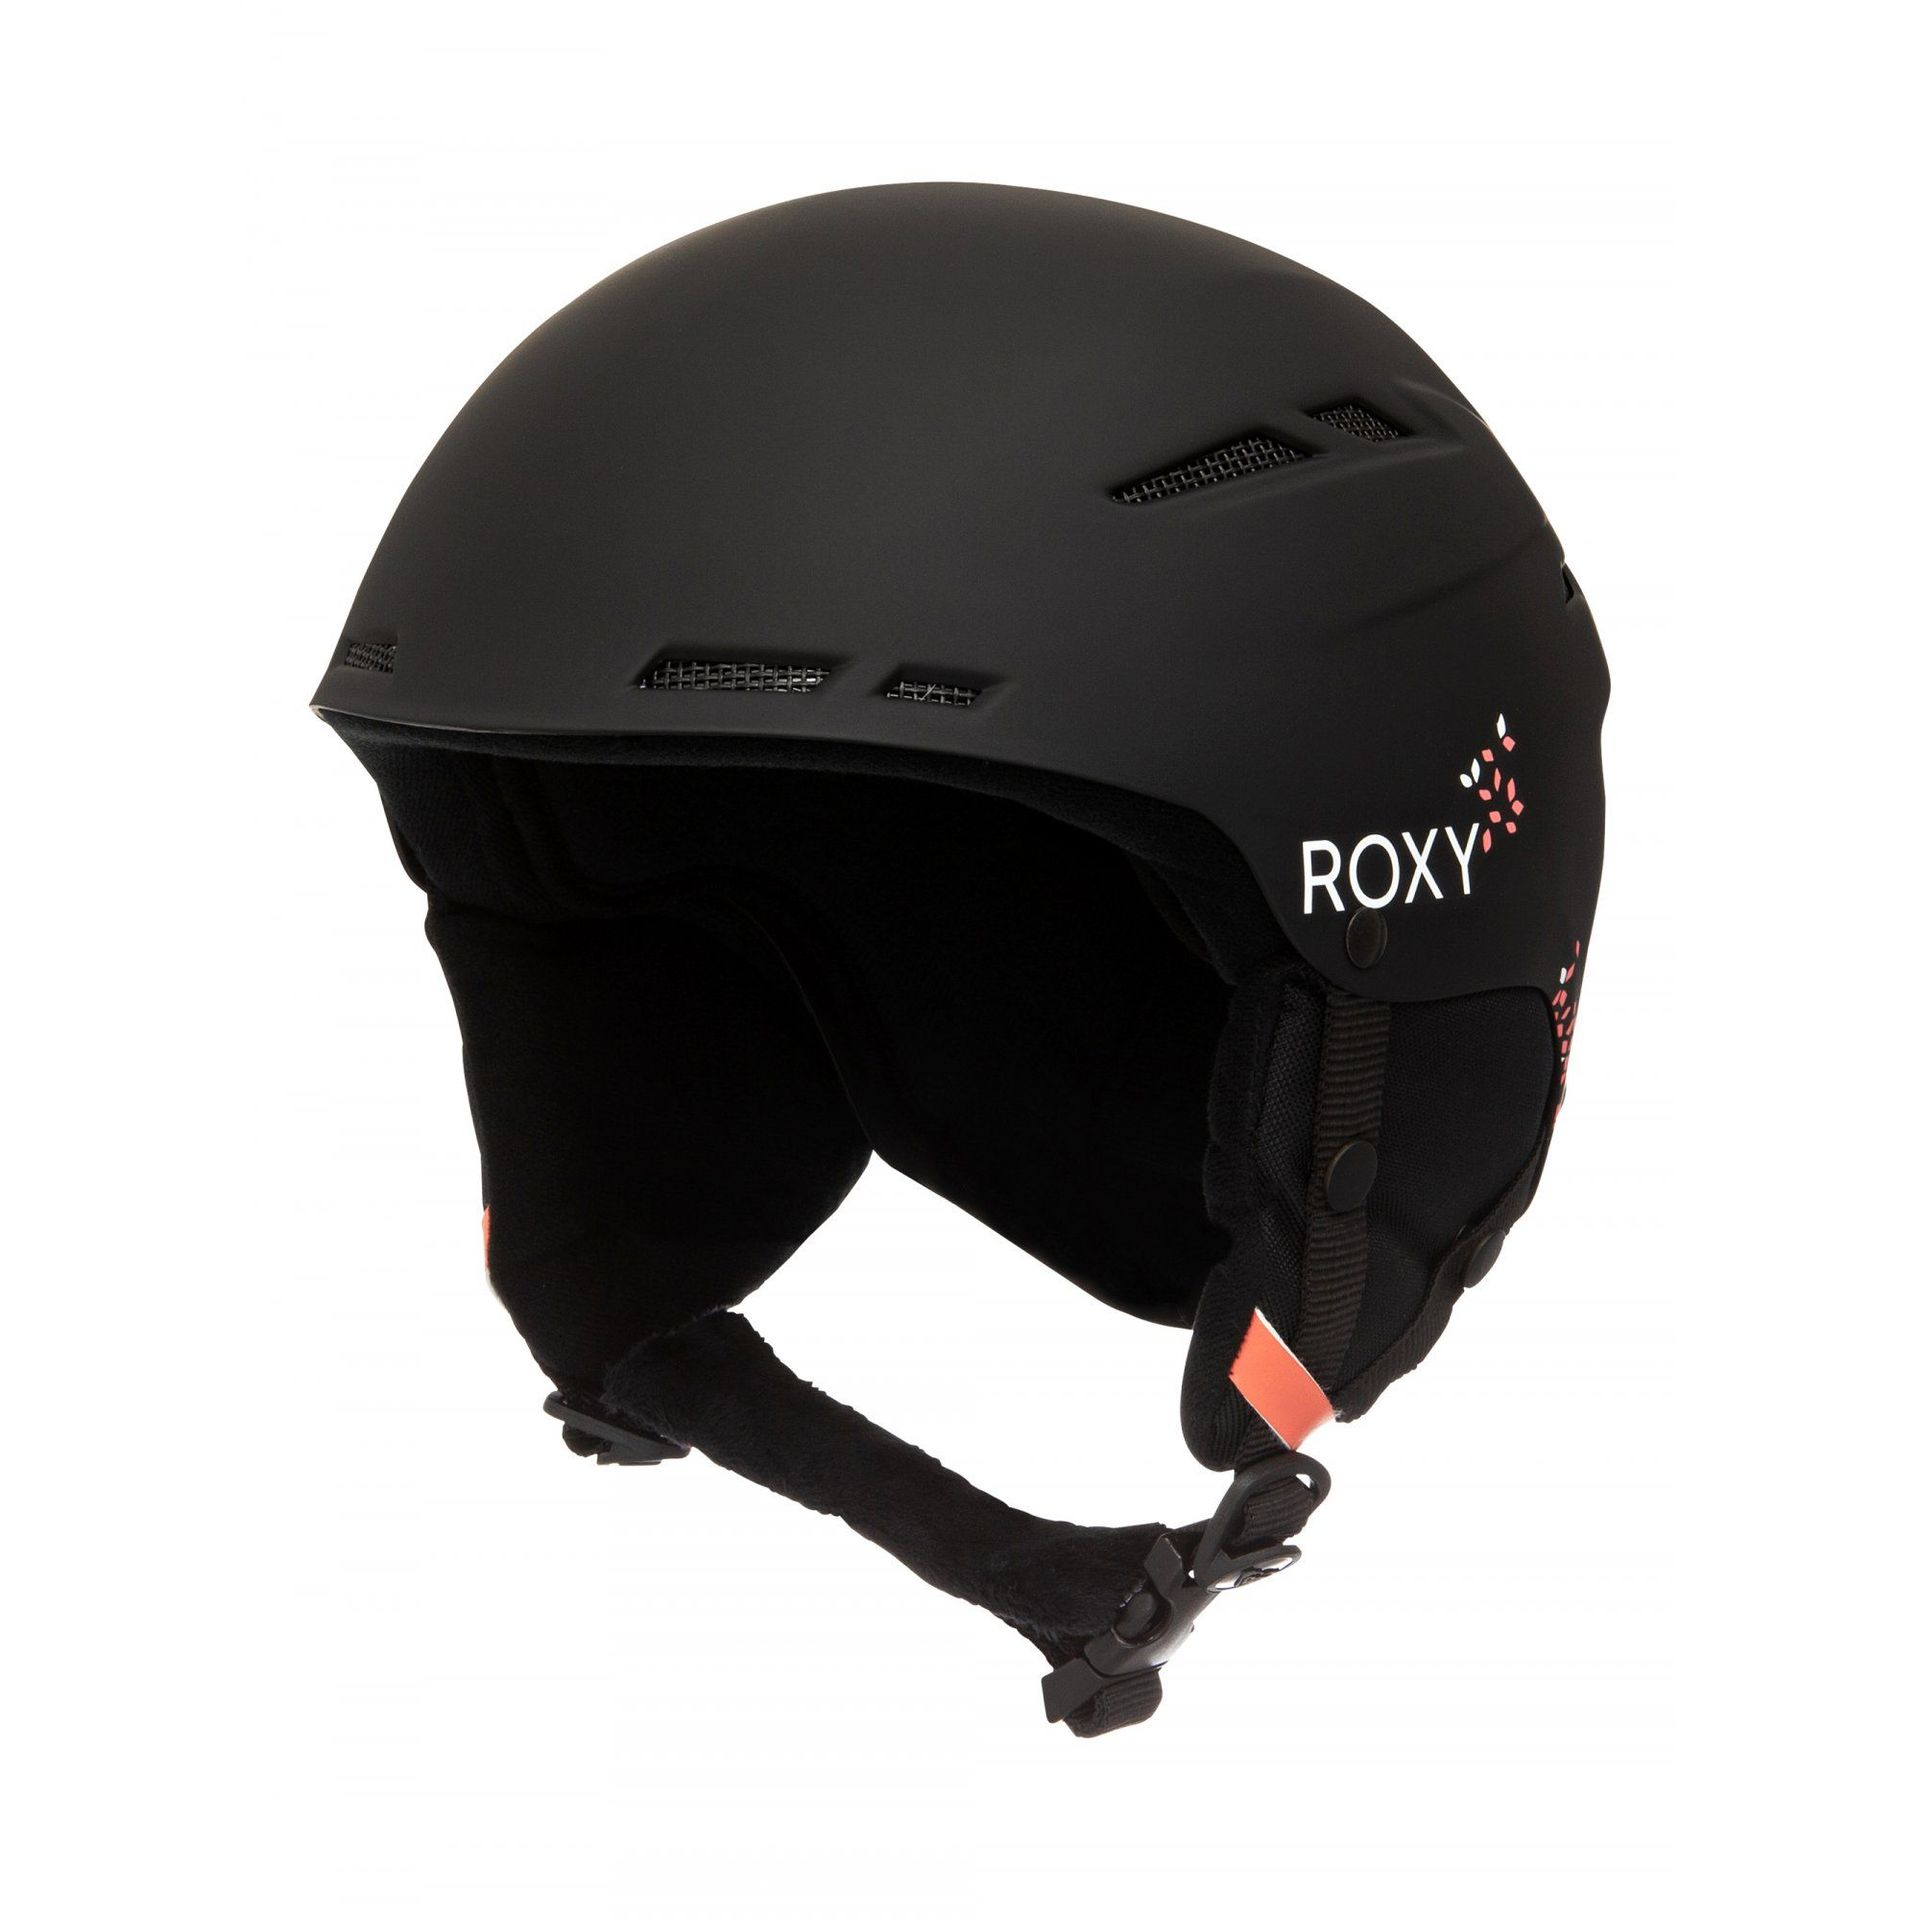 KASK ROXY ALLEY OOP ERJTL03042-KVJ0 TRUE BLACK 1